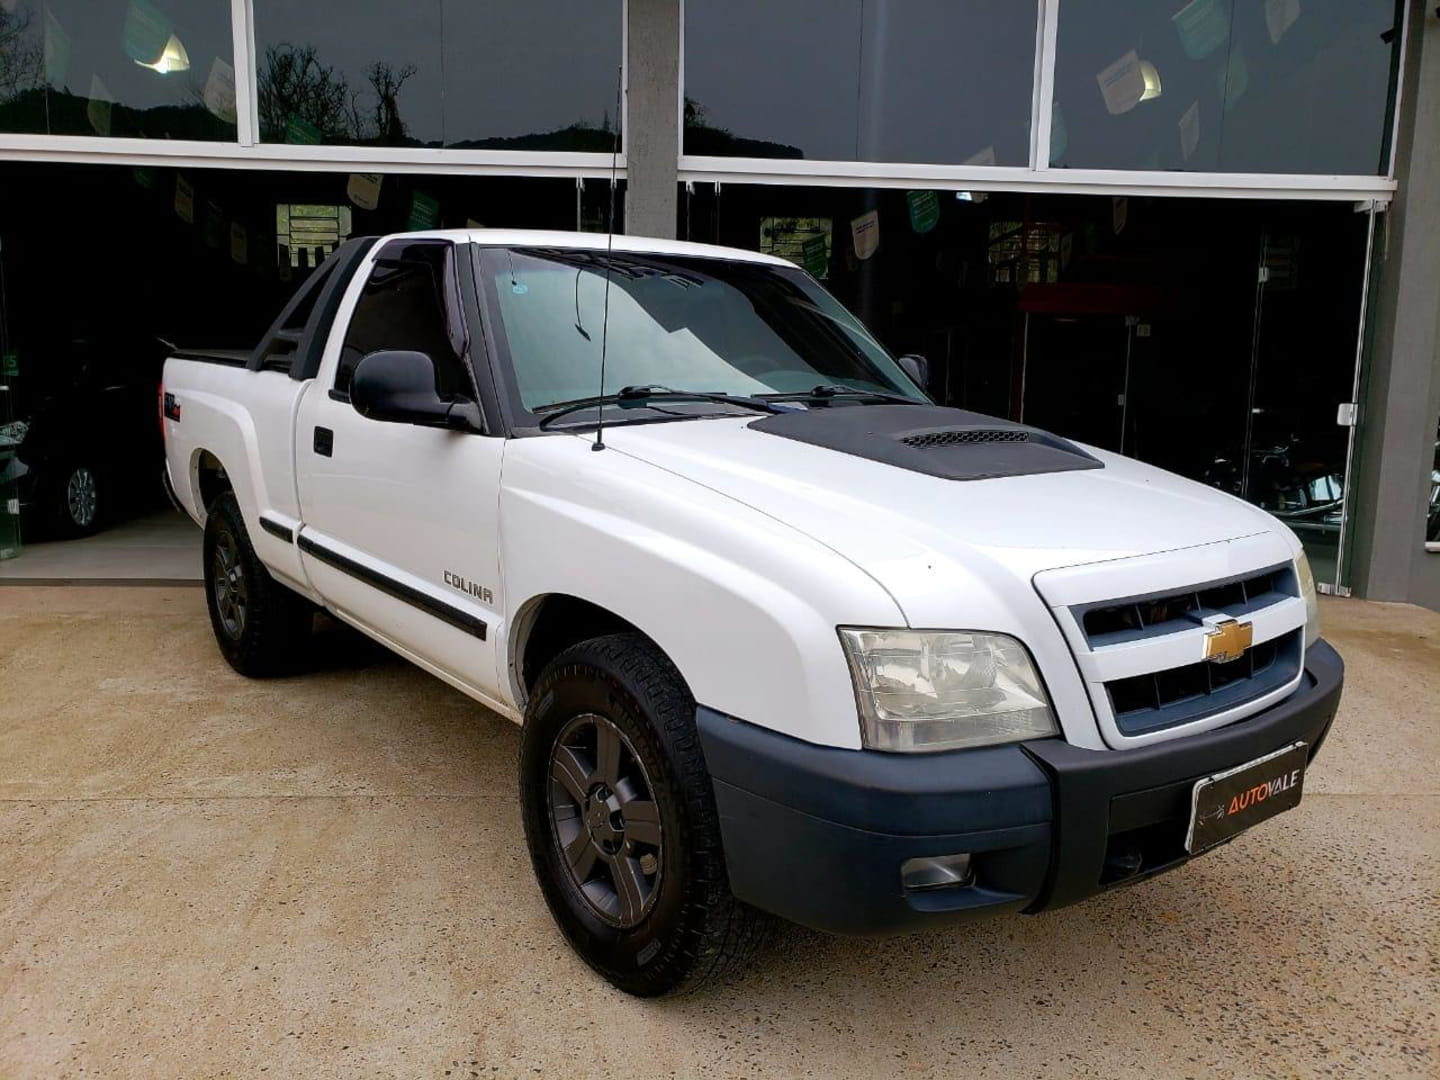 s10 colina d 4x4 2011 vale real